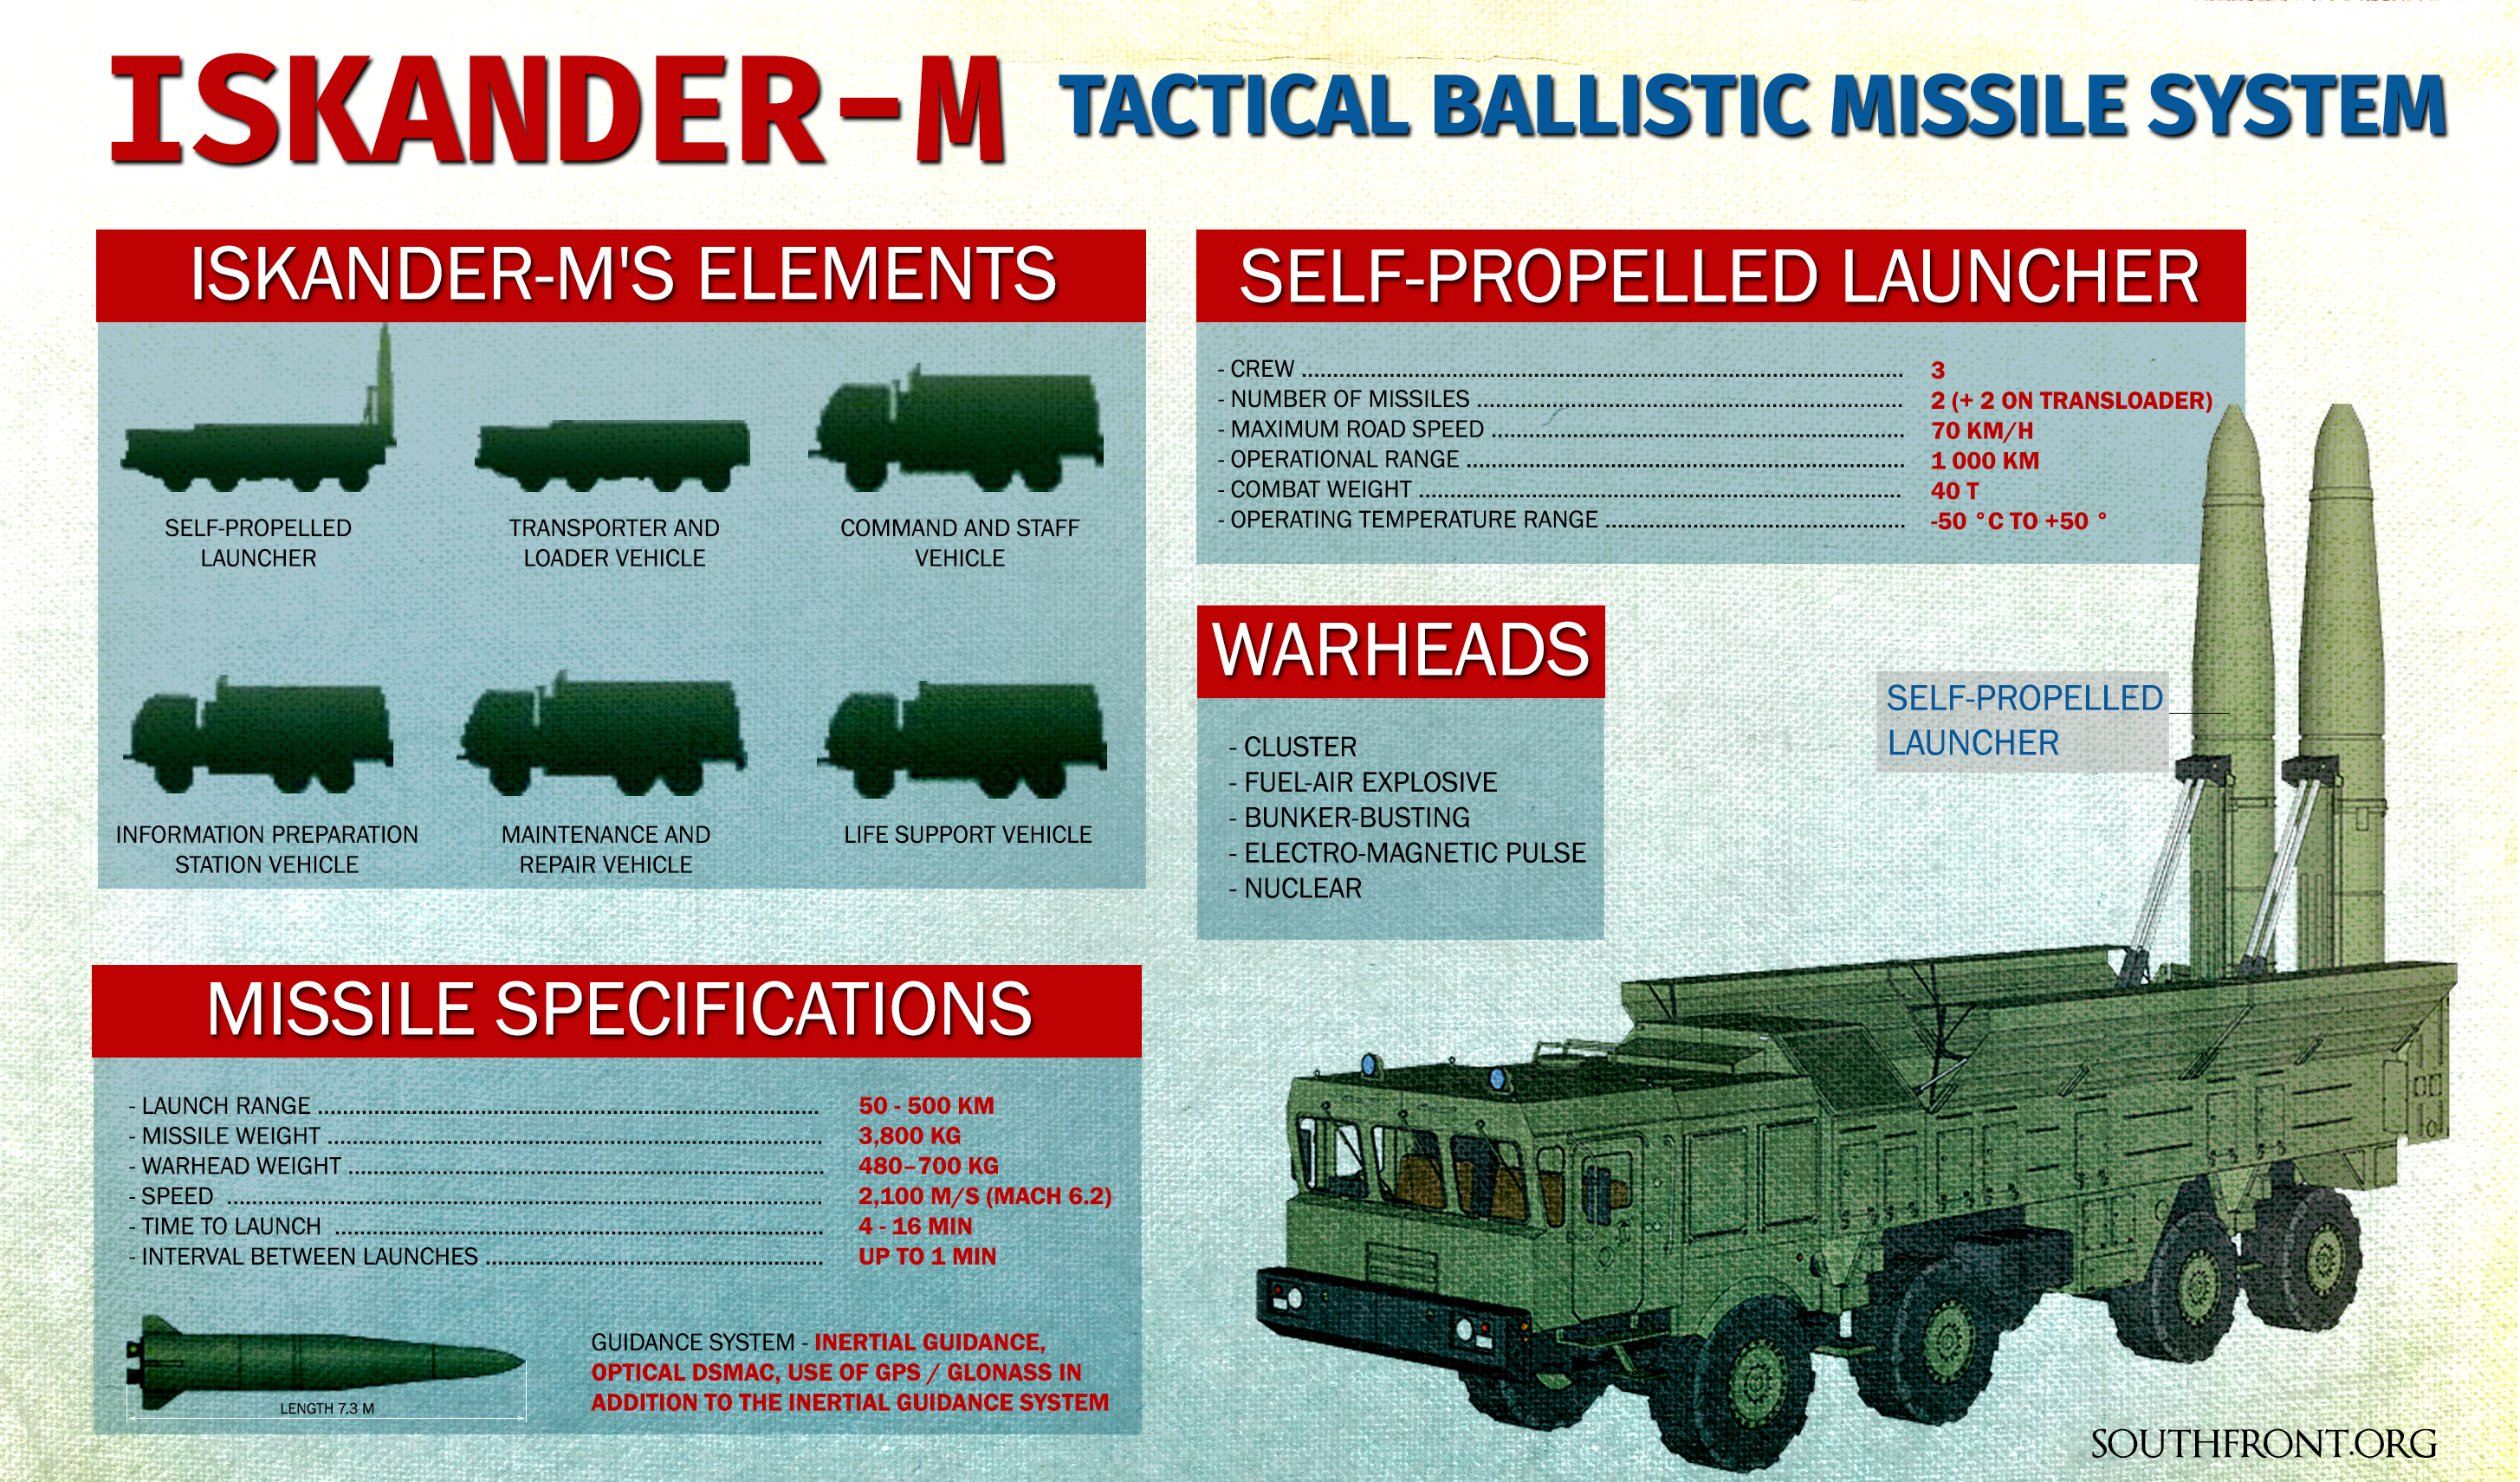 Russia Is Preparing For Permanent Deployment Of  Iskander-M Missile Systems In Kaliningrad - Media